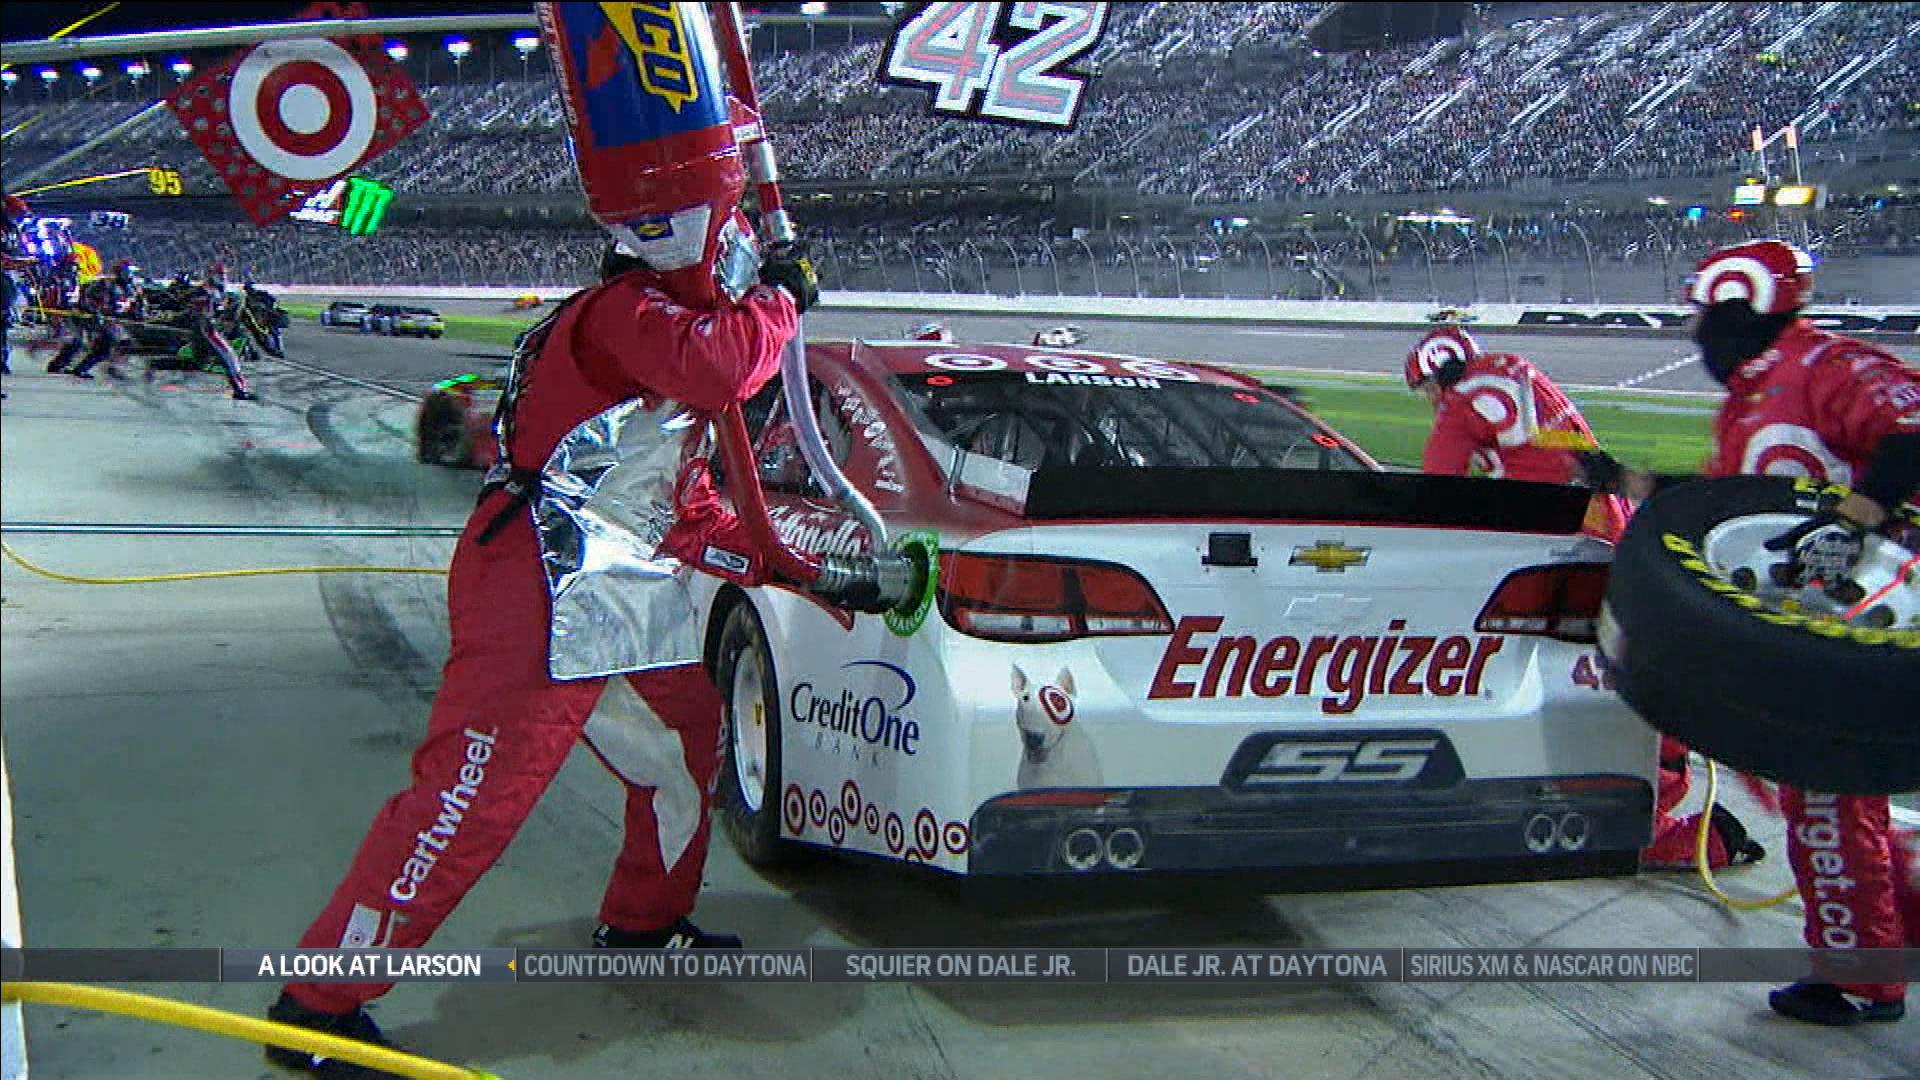 Kyle Larson Still Trying To Get Used Restrictor Plate Racing